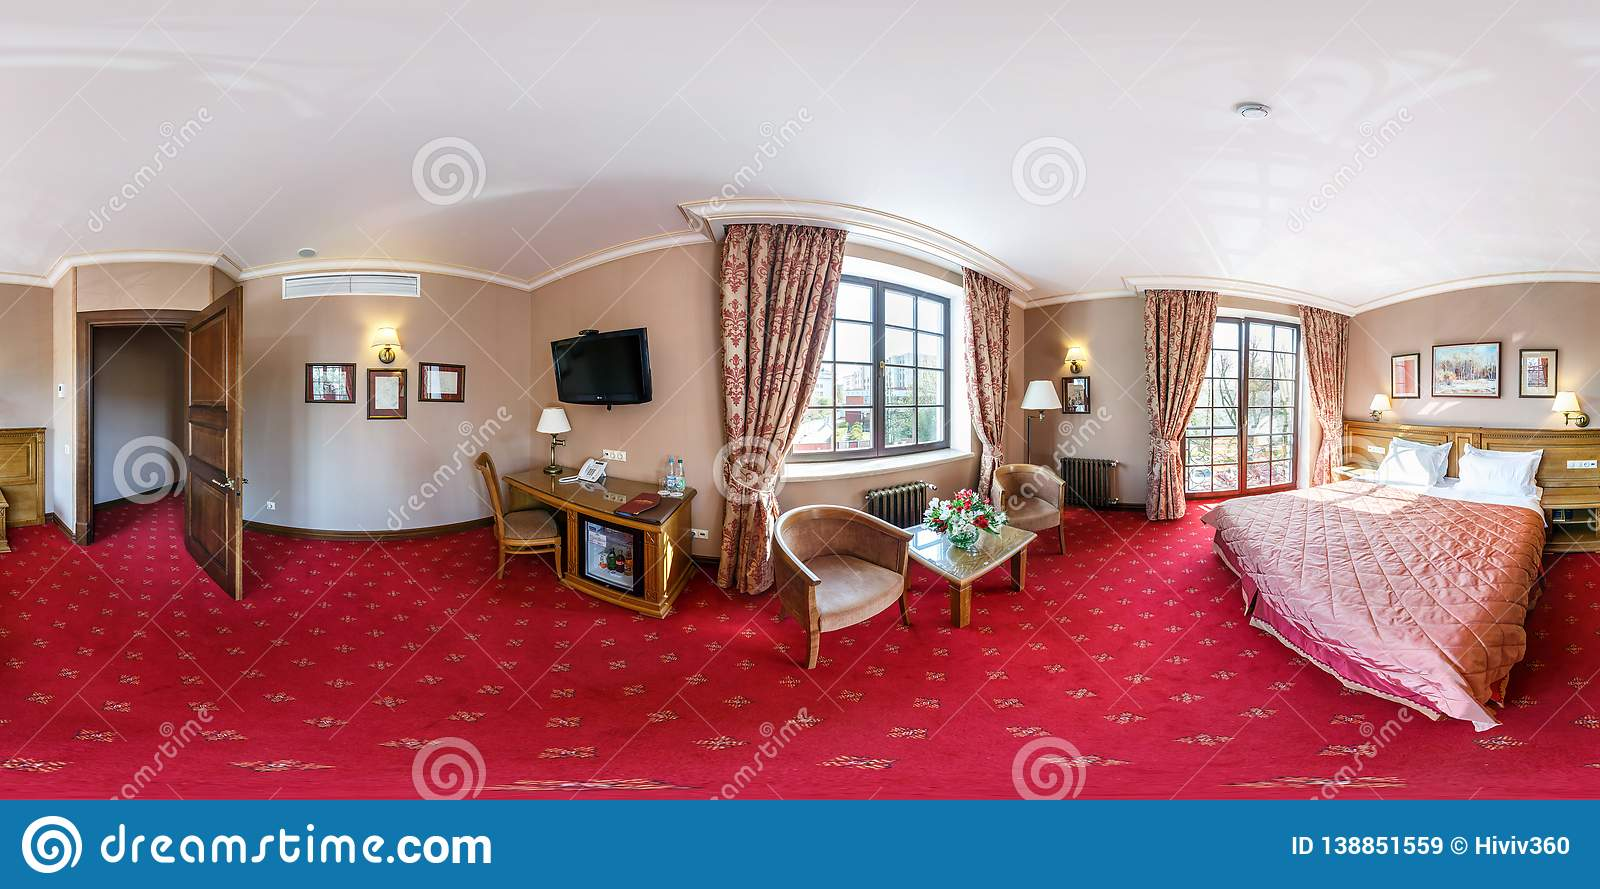 Brest Belarus April 27 2014 Modern Loft Apartment Interior Living Room With Red Carpet Hall Full 360 Panorama In Editorial Stock Image Image Of Equirectangular Comfortable 138851559